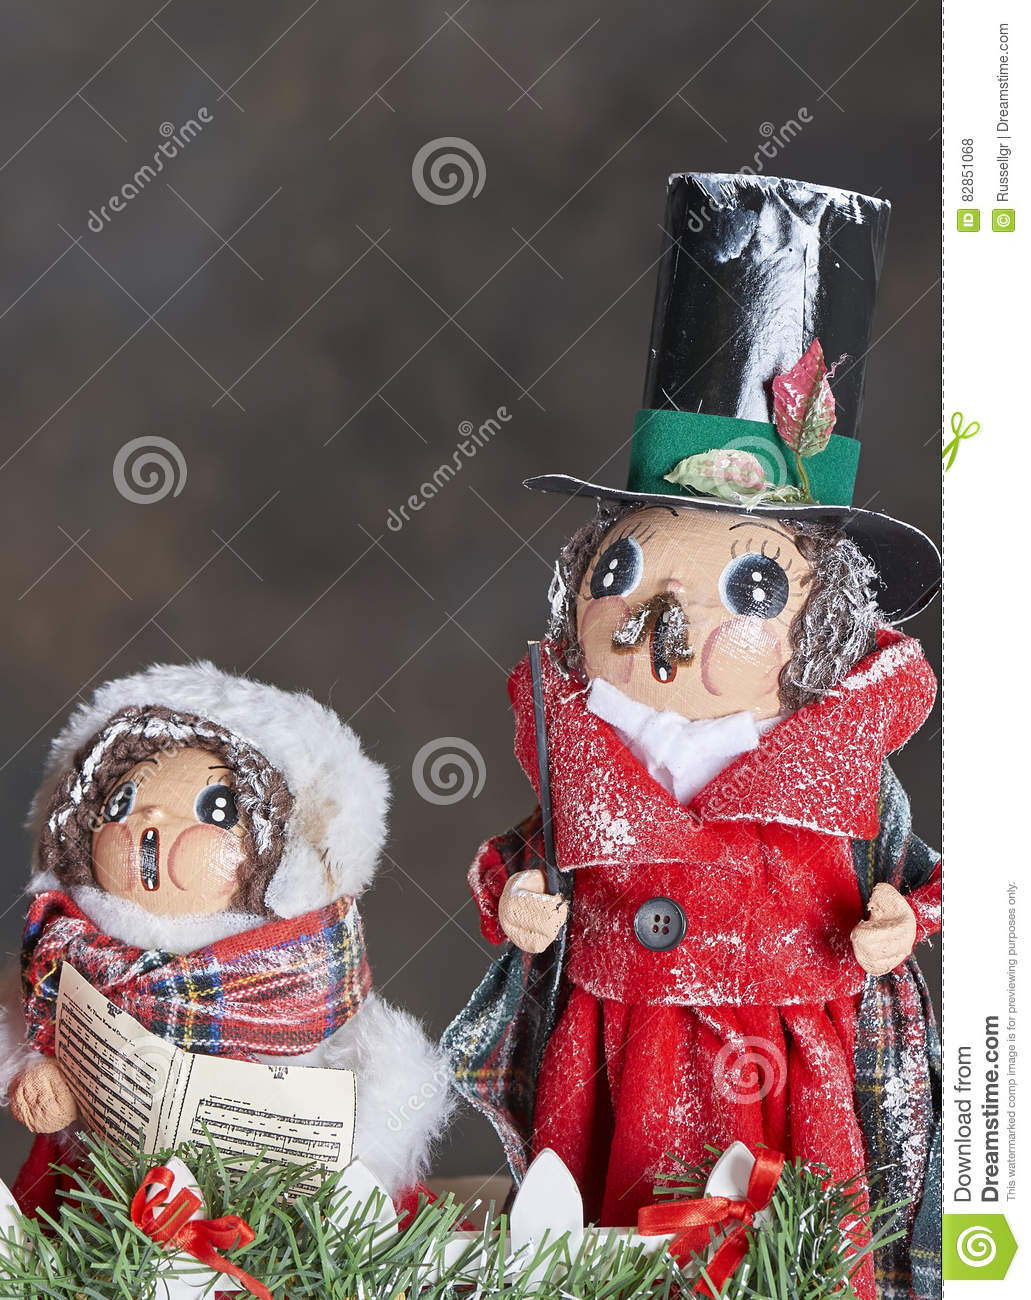 Christmas Carol Singers Ornaments.Carol Singers Ornaments Stock Photo Image Of Holiday 82851068